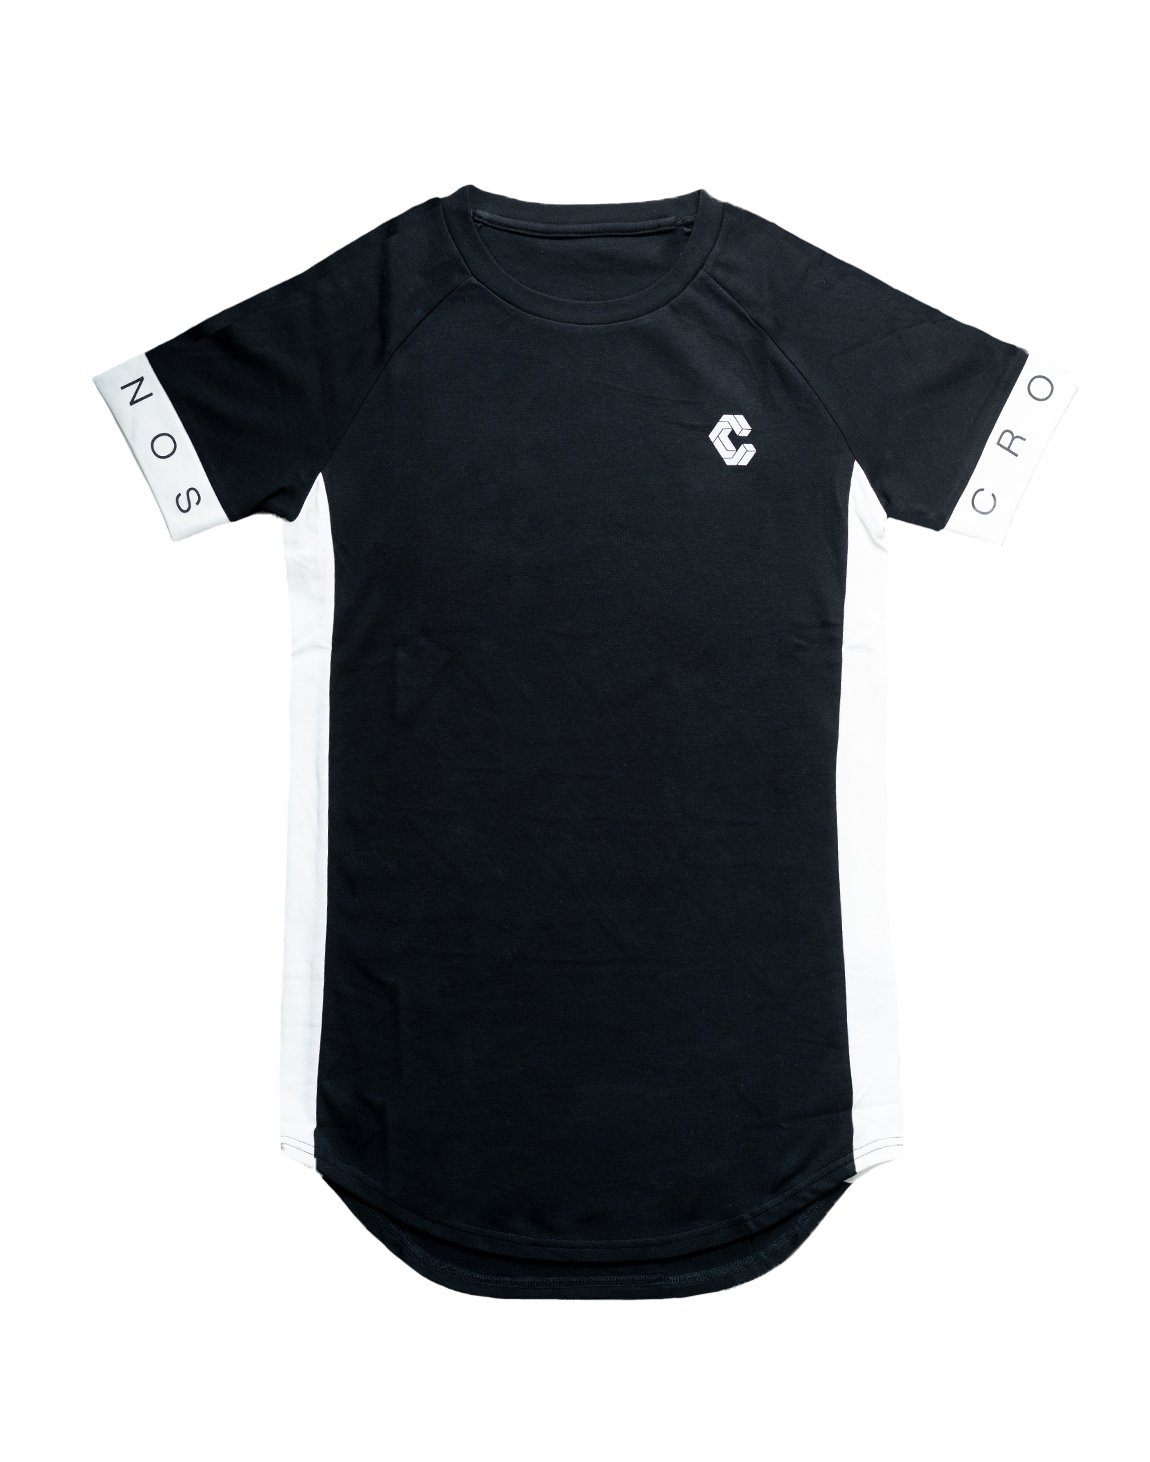 <img class='new_mark_img1' src='https://img.shop-pro.jp/img/new/icons1.gif' style='border:none;display:inline;margin:0px;padding:0px;width:auto;' />CUFF DESIGN LOGO TIGHT SIZE T-SHIRTS【BLACK】